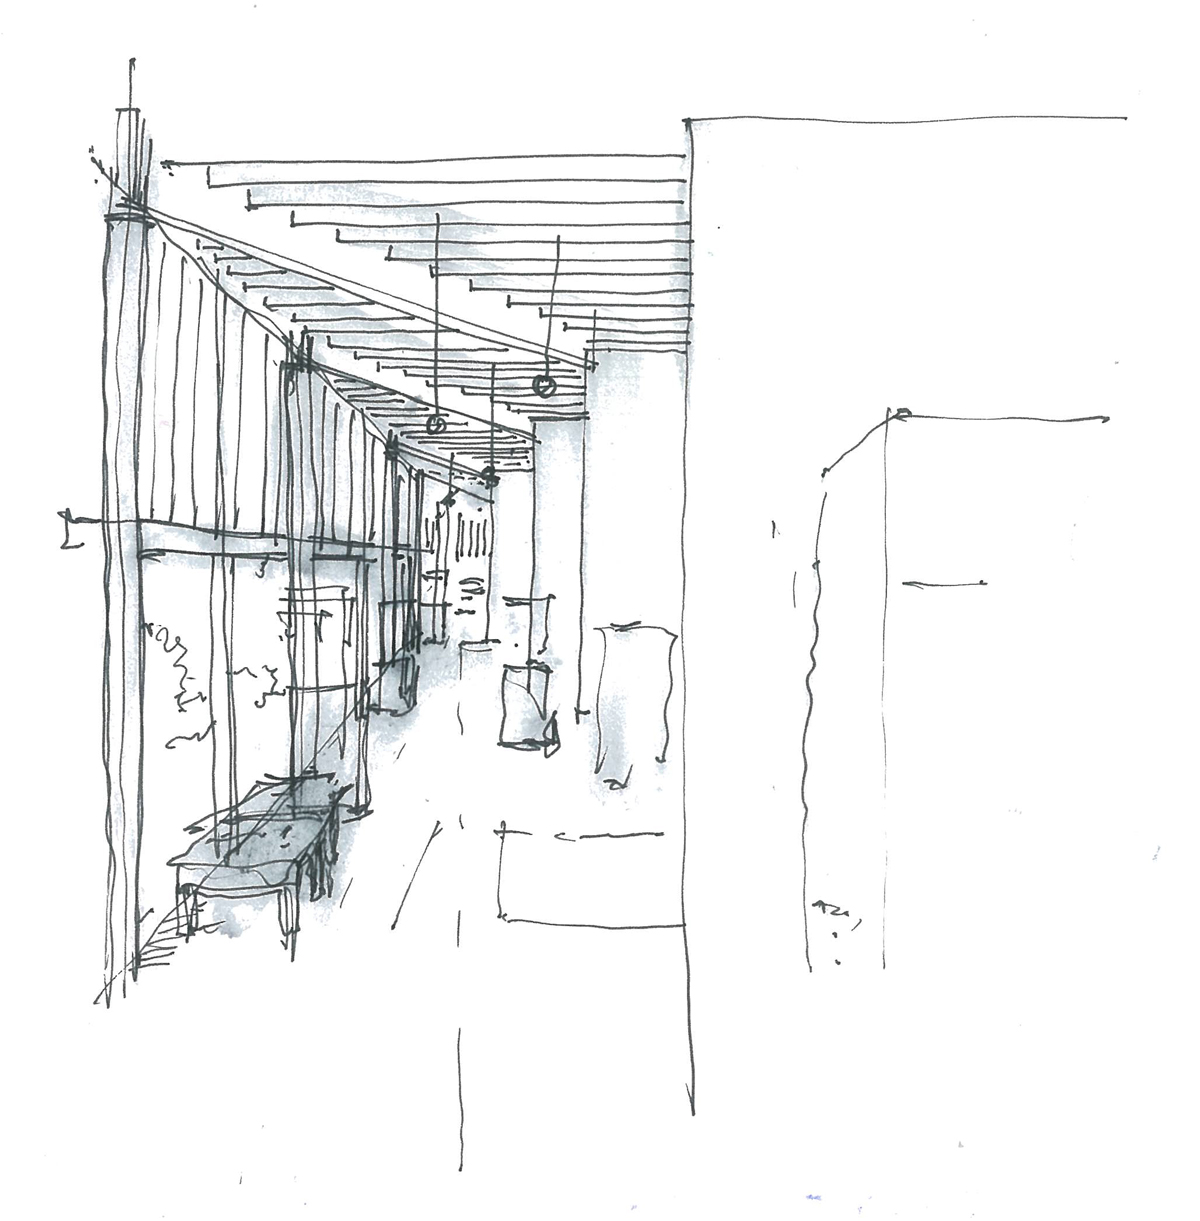 lsi-architects_sketchclub_08